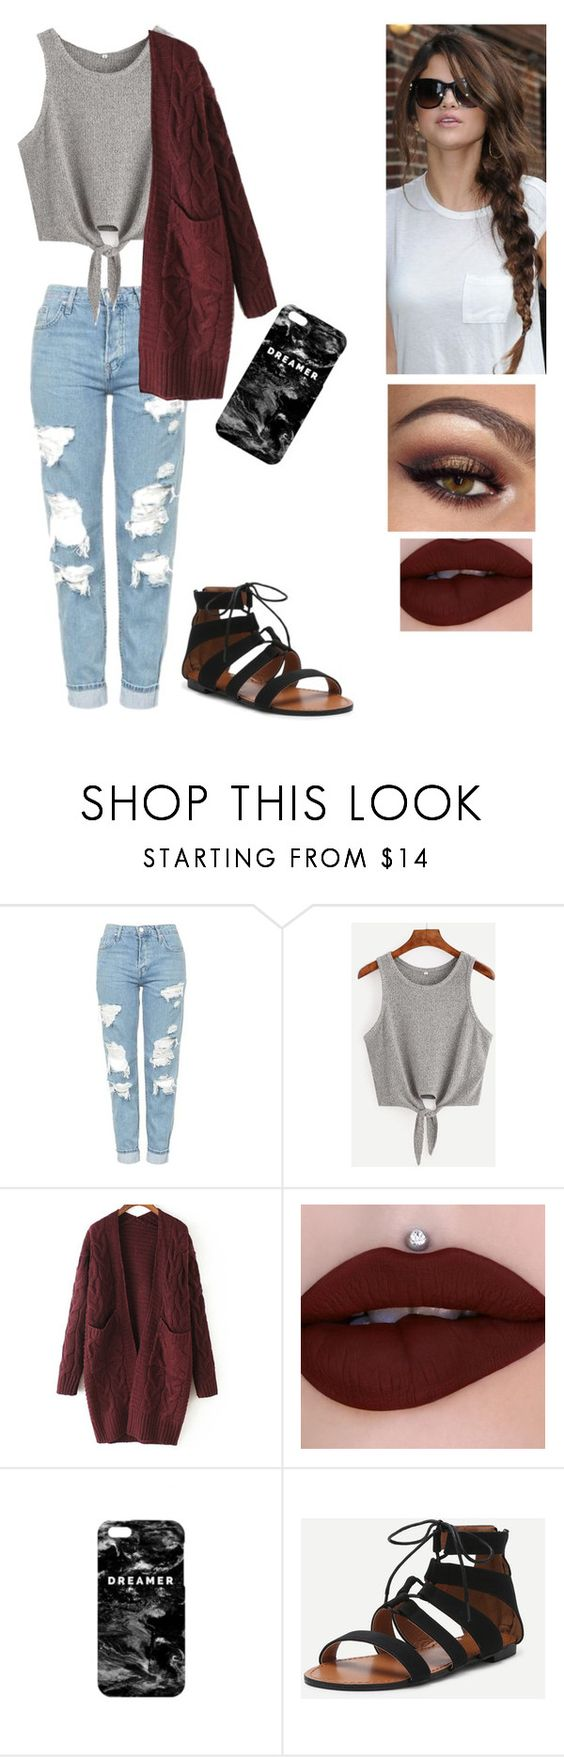 """""""Untitled #108"""" by katiemcdimples ❤ liked on Polyvore featuring Topshop, WithChic and Mr. Gugu & Miss Go"""